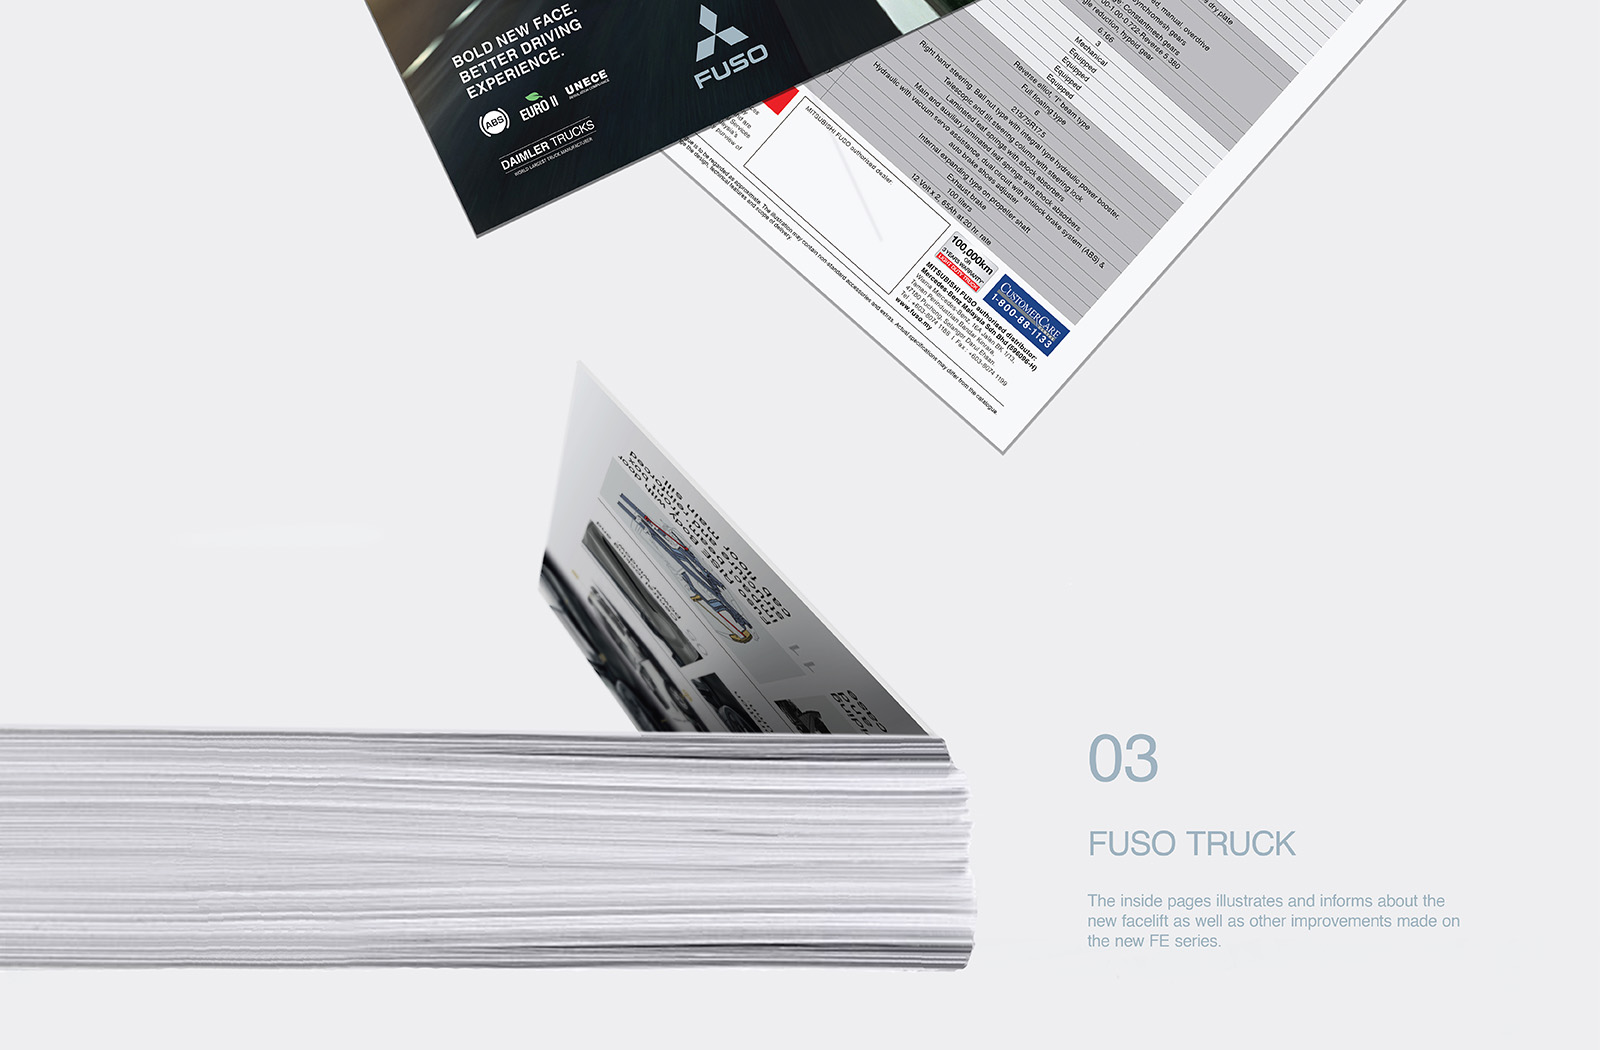 Fuso Trucks Canter FE/FG 2017 brochure design featuring a die-cut of the the truck against two different background showcasing truck's versatility in various environment and a bunch of brochures stacked on top of each other